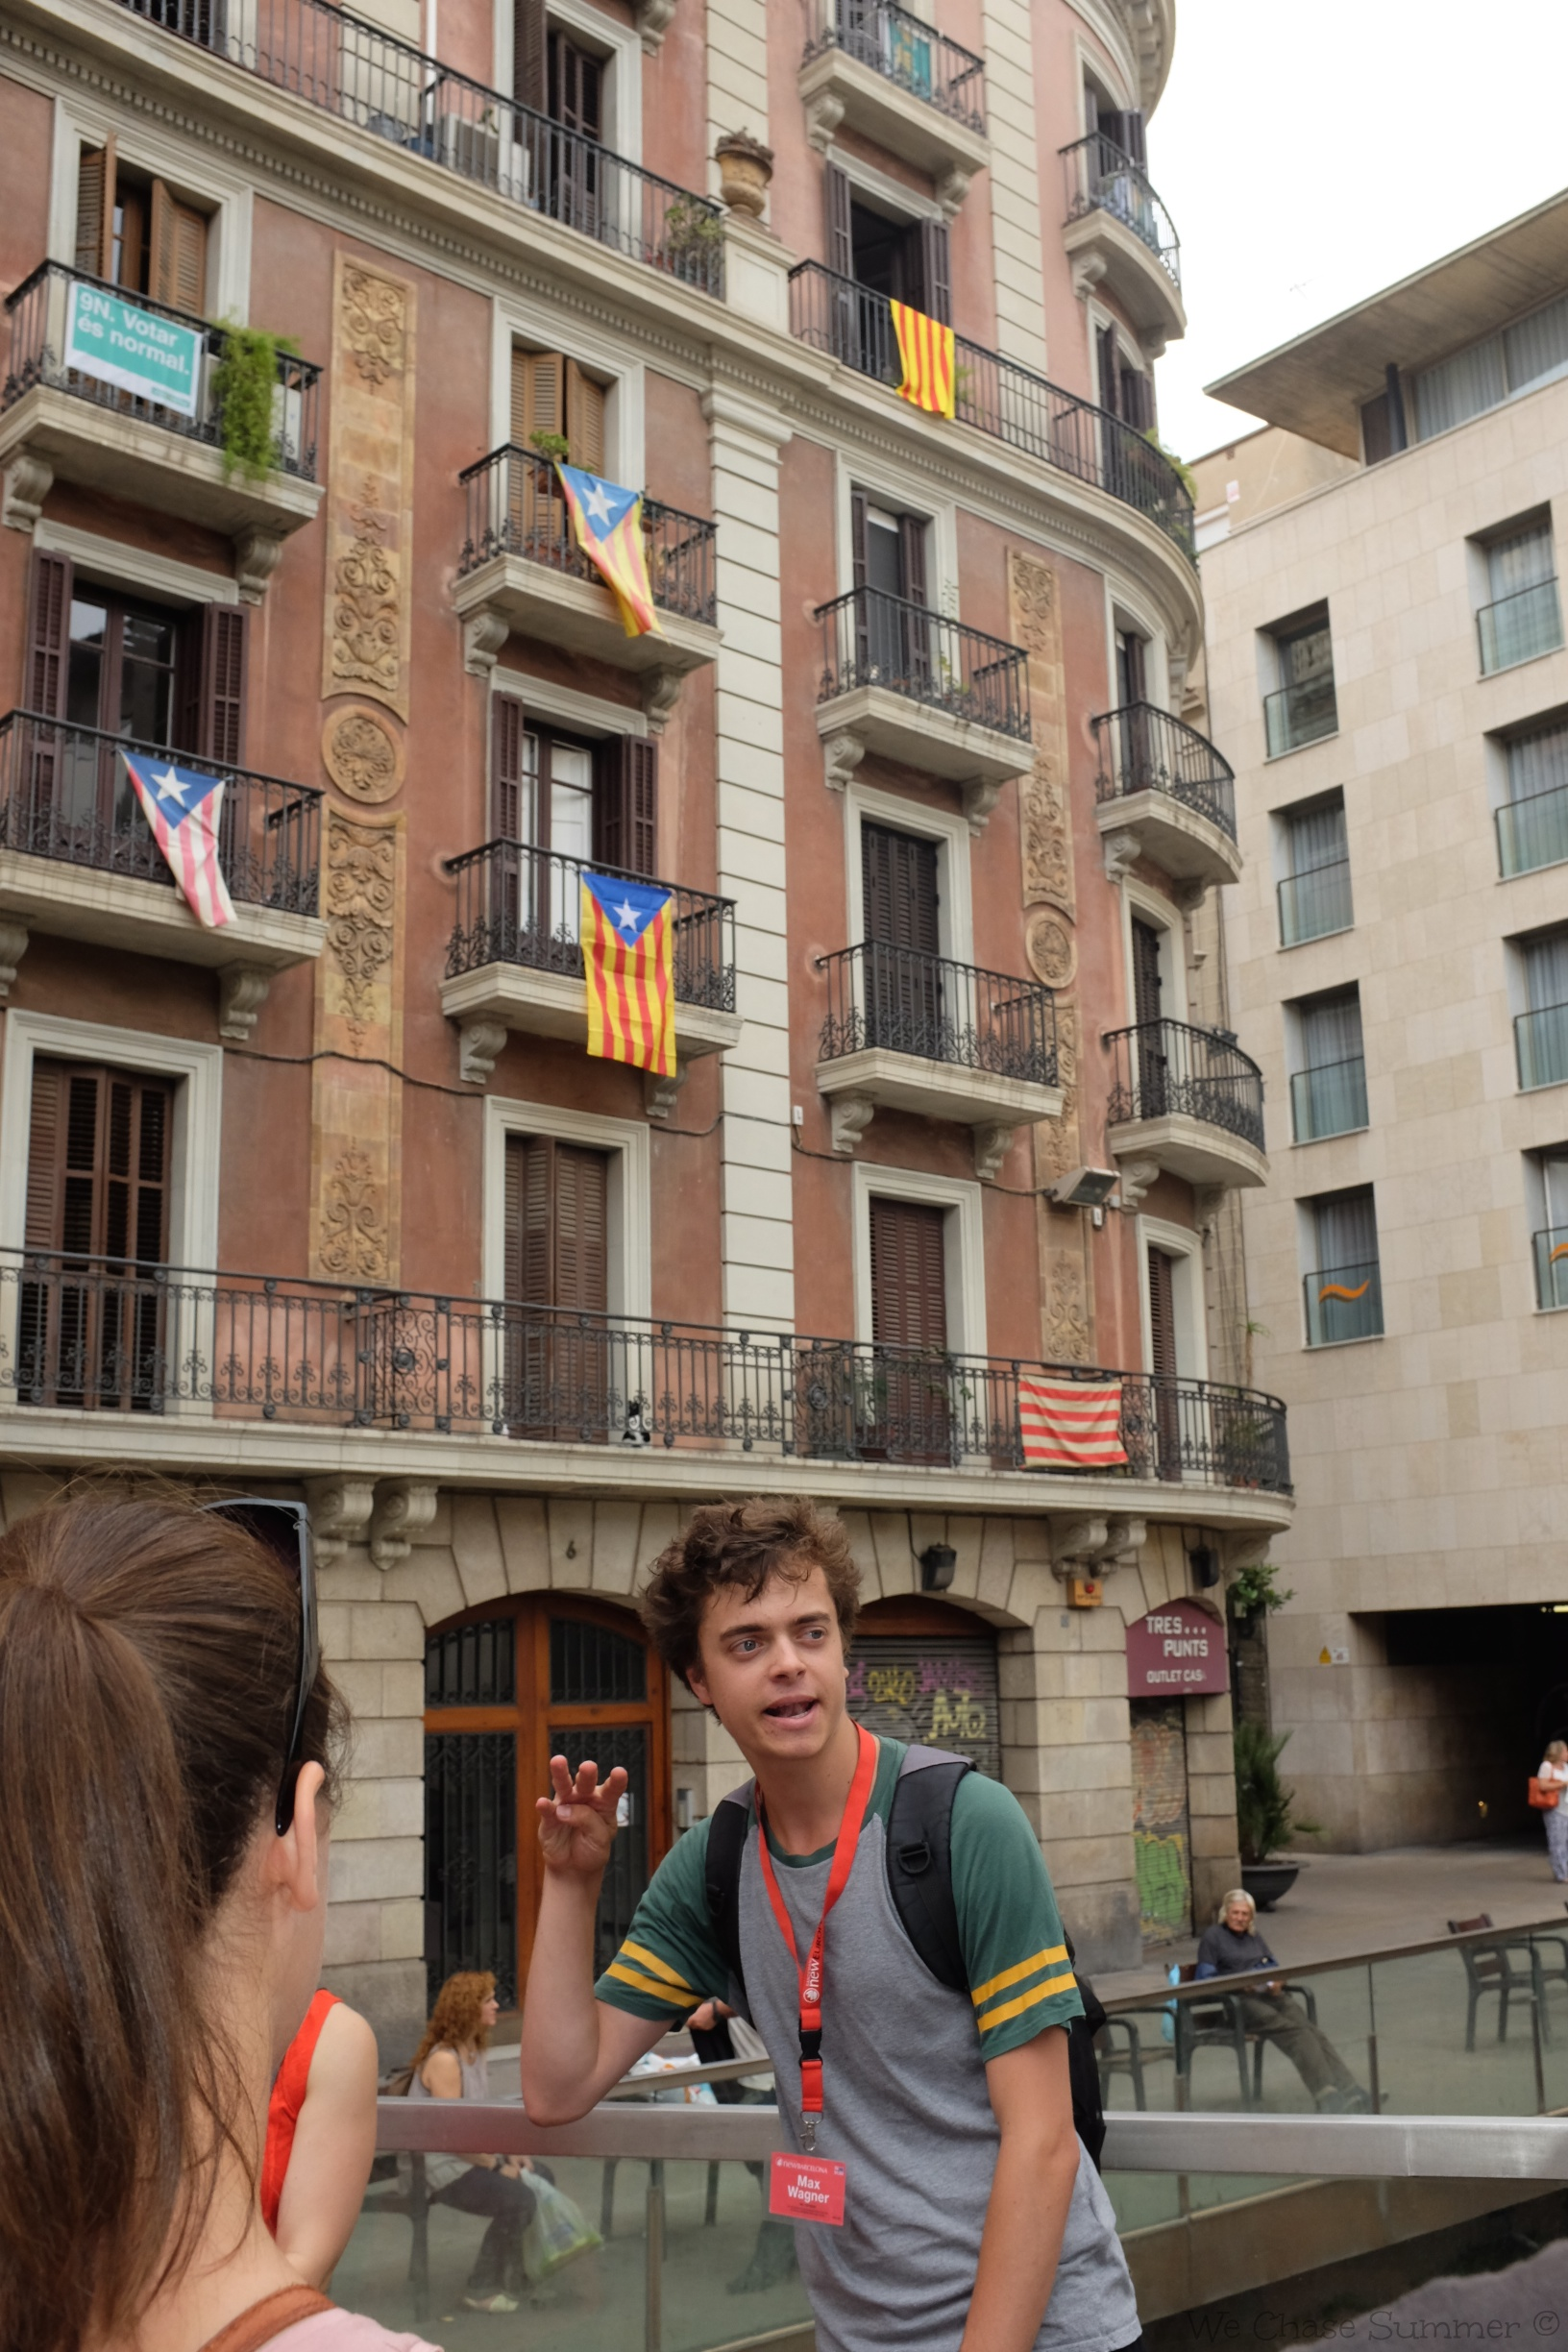 Our guide, Max, explaining the legend